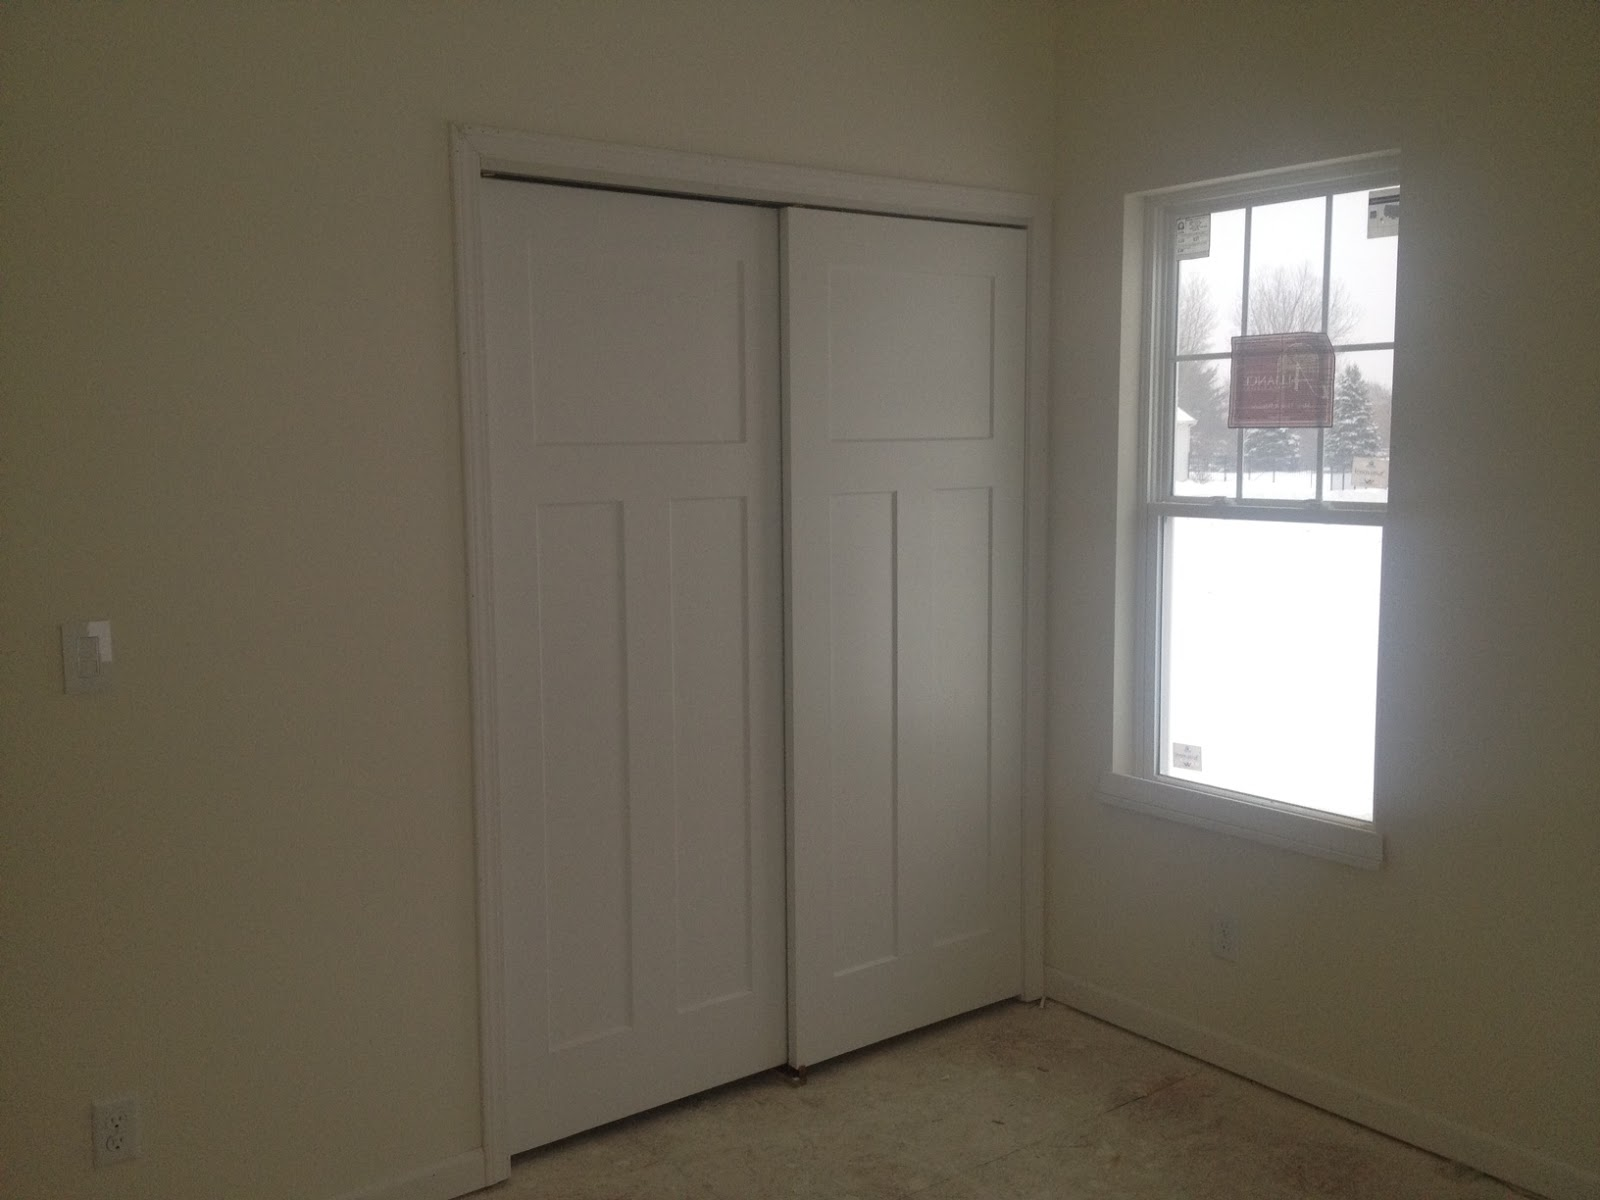 1200 #4D4331 Style Door I Think Our Exact Doors Are The Crossmore By Craftmaster  image Craftmaster Garage Doors 36631600